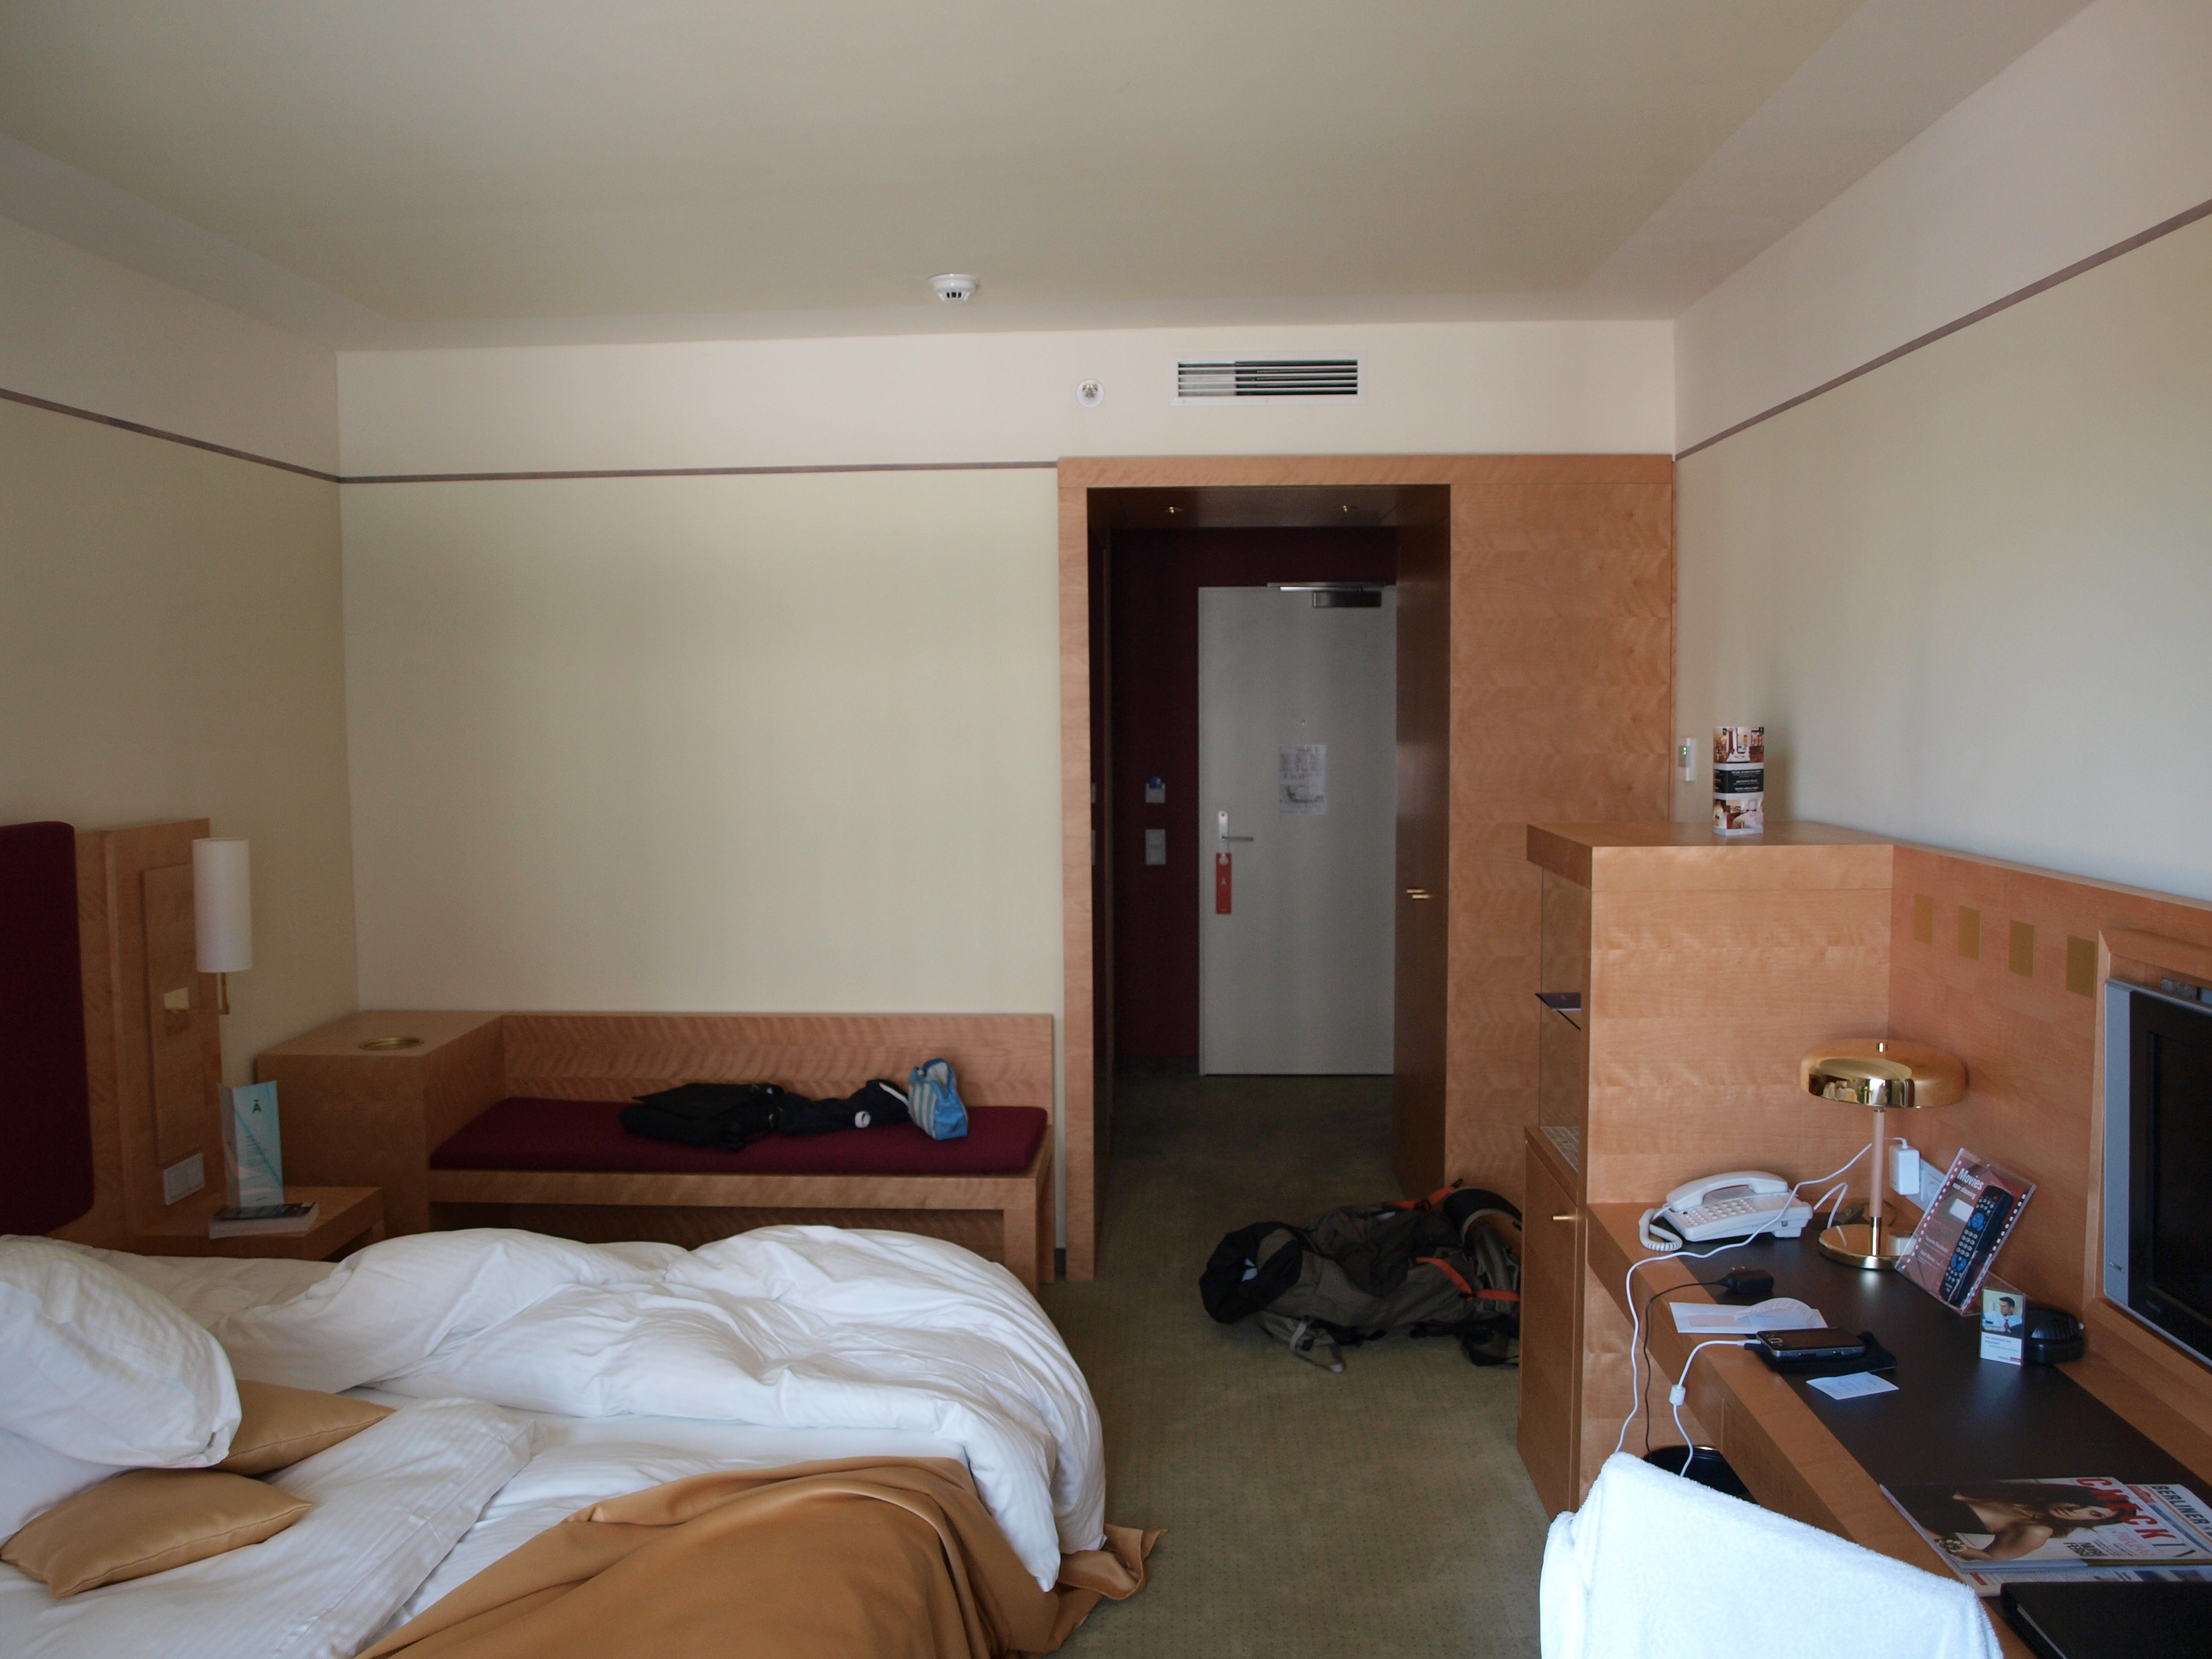 Hotel Room Size Square Feet